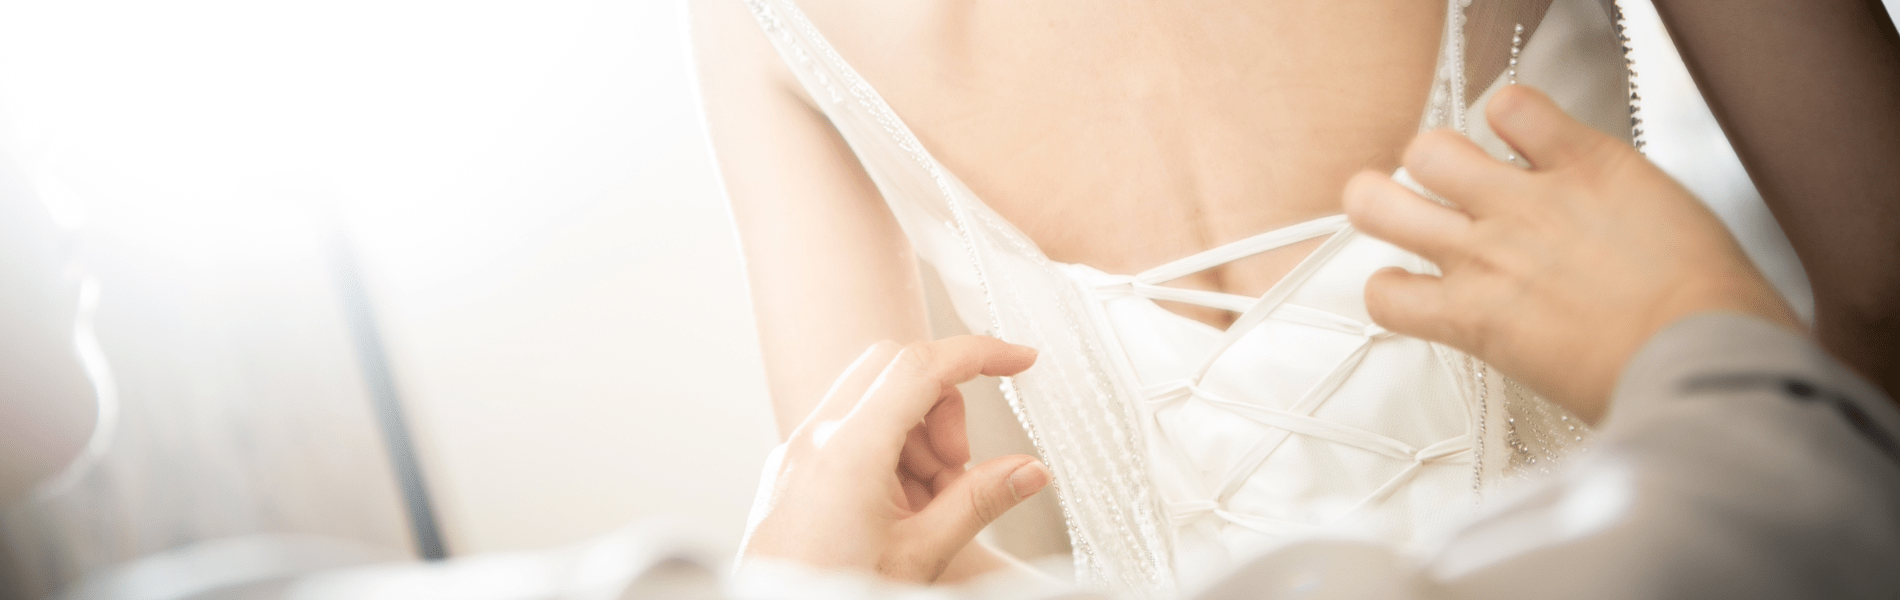 The safe way to clean & restore your wedding dress